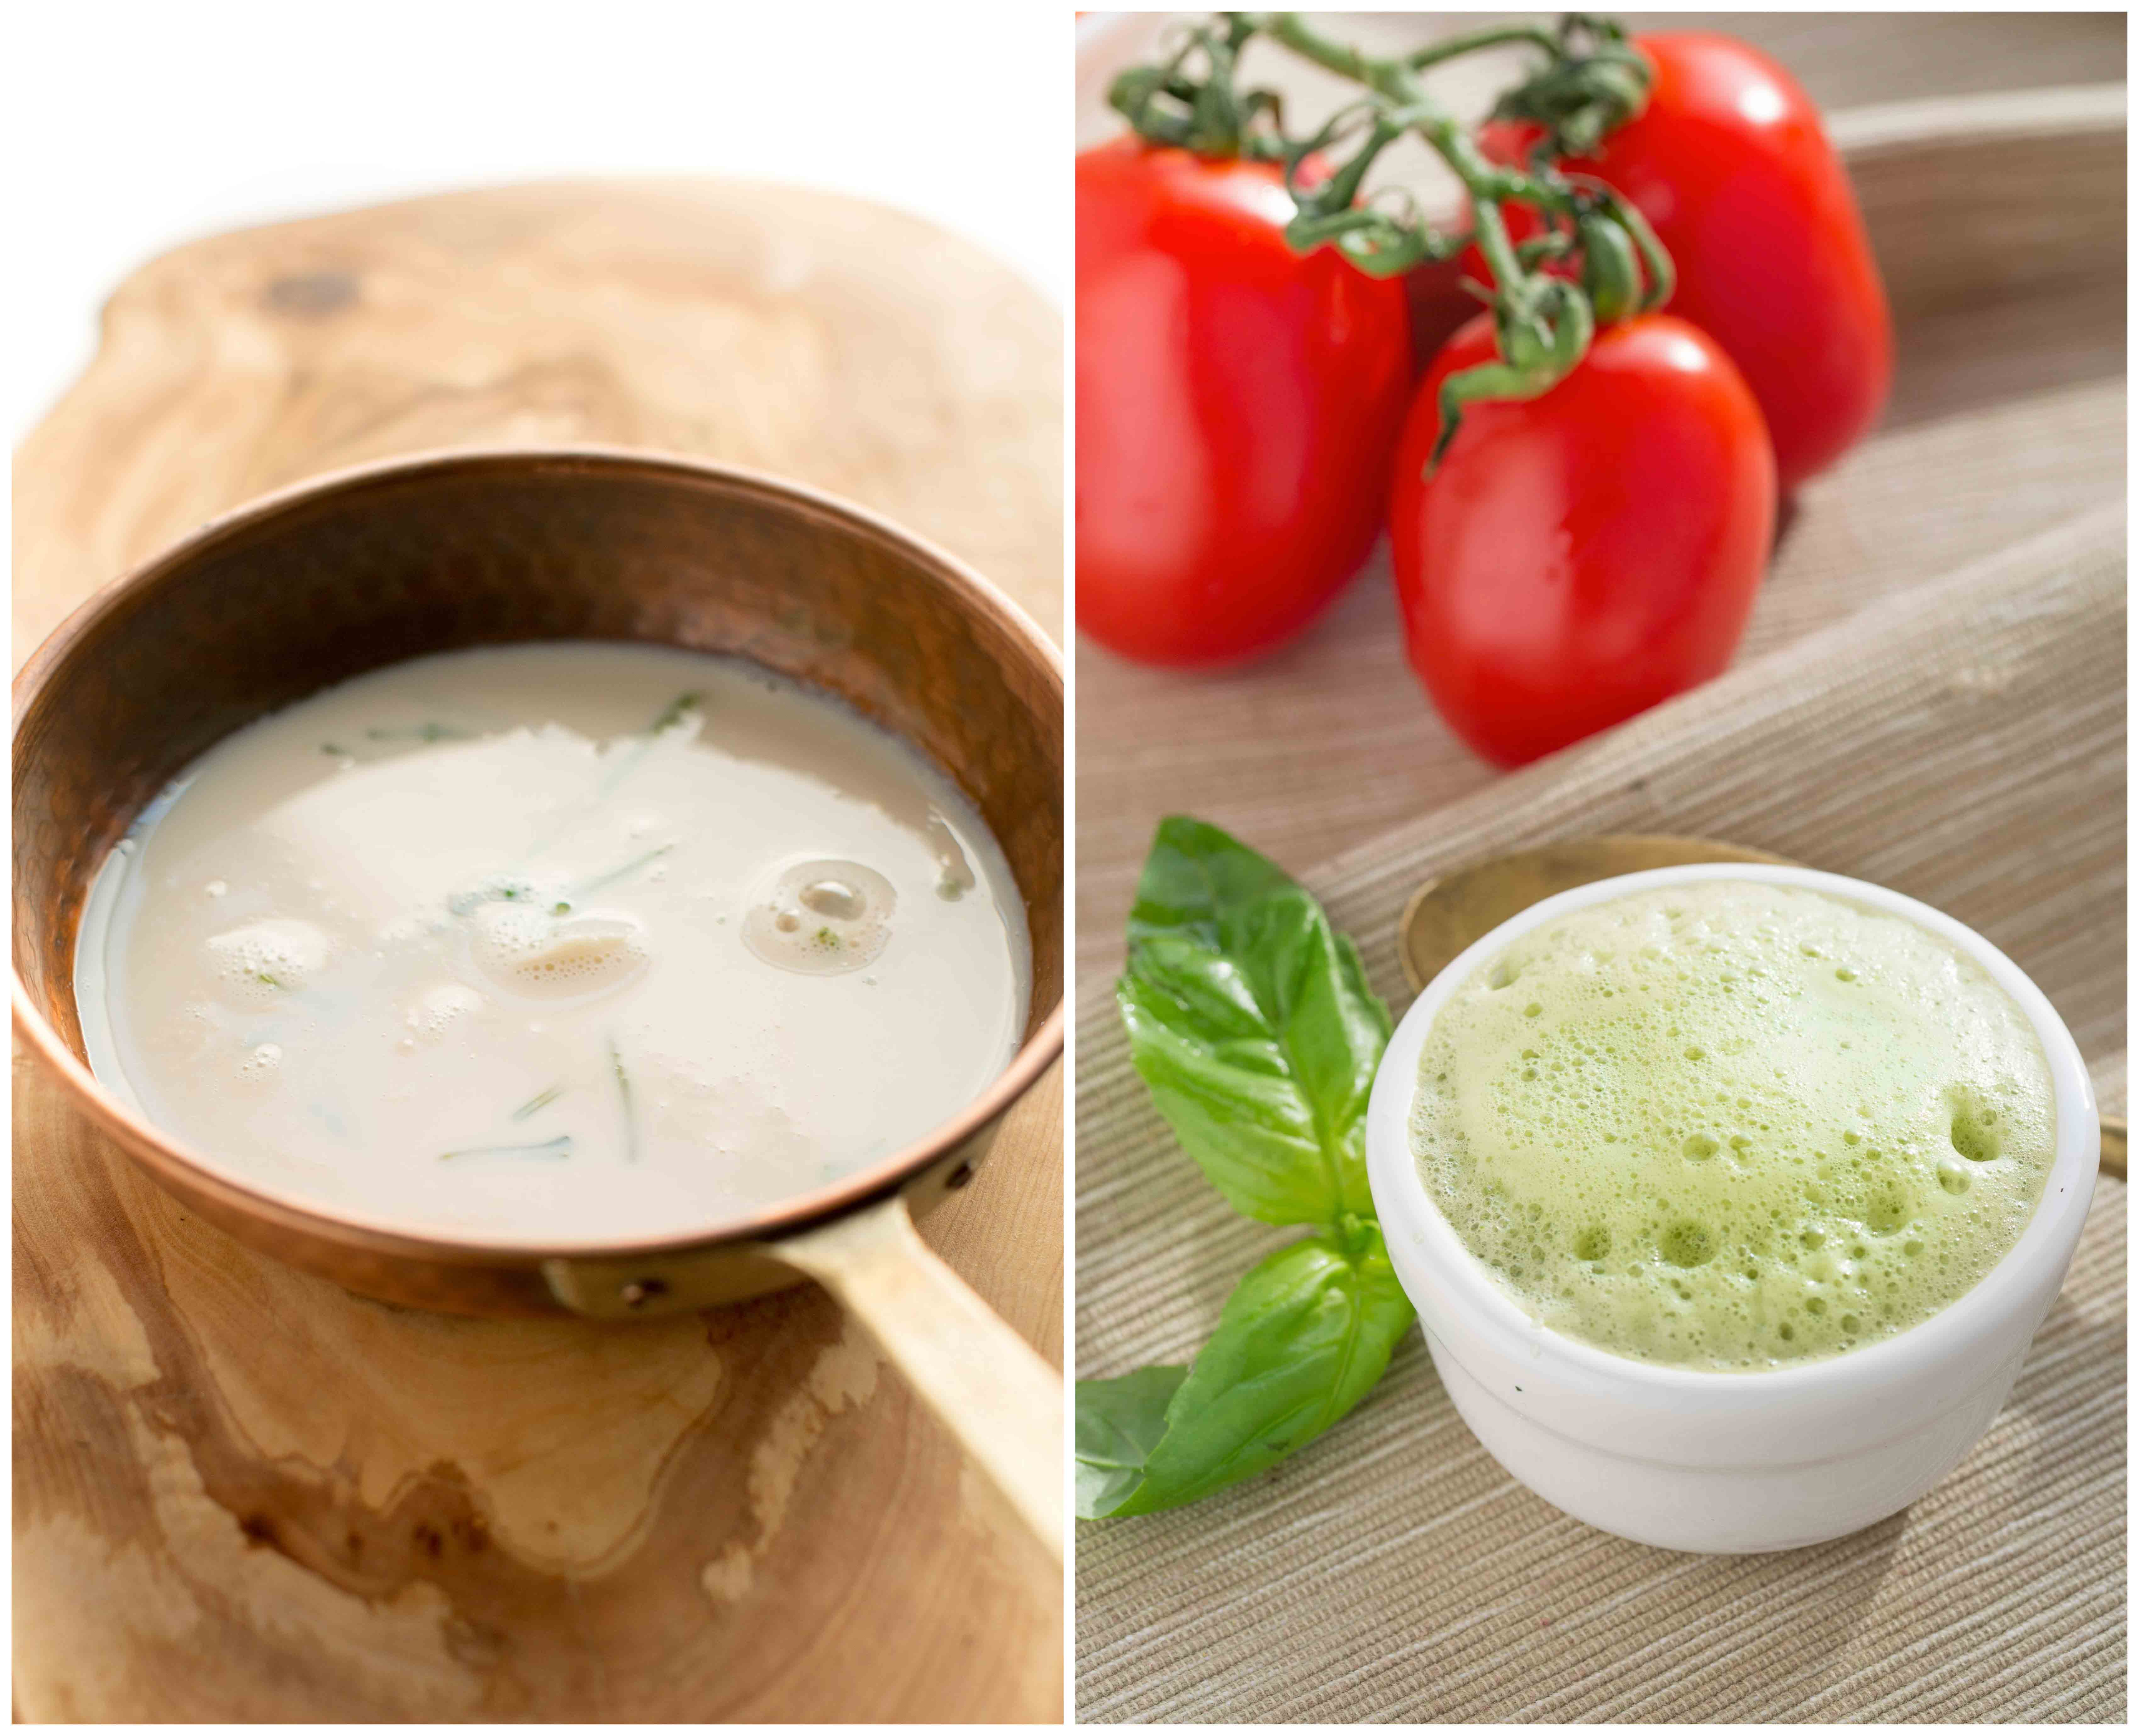 GAZPACHO recipe with fresh basil foam recipe | ricetta gazpacho schiuma al basilico